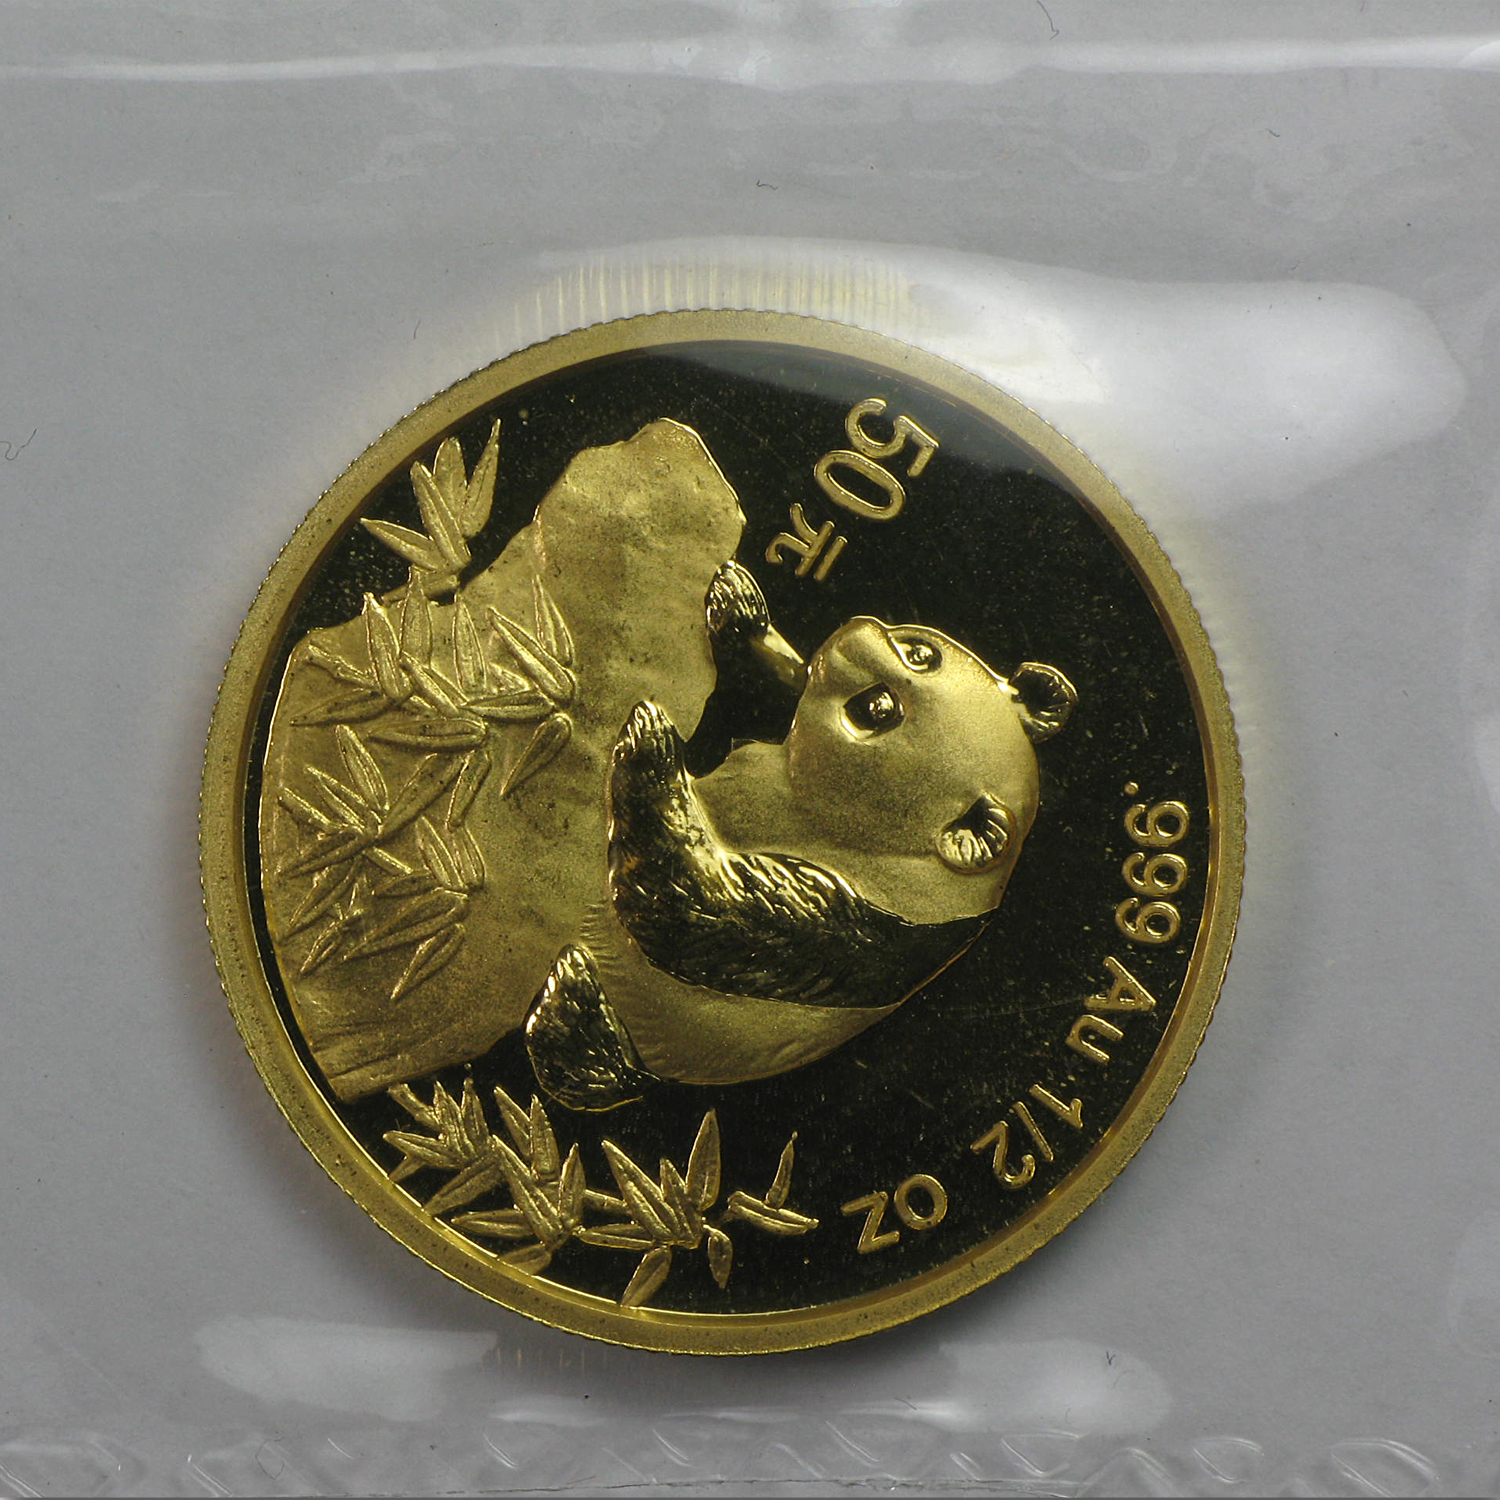 1999 China 1/2 oz Gold Panda Large Date Plain 1 BU (Sealed)